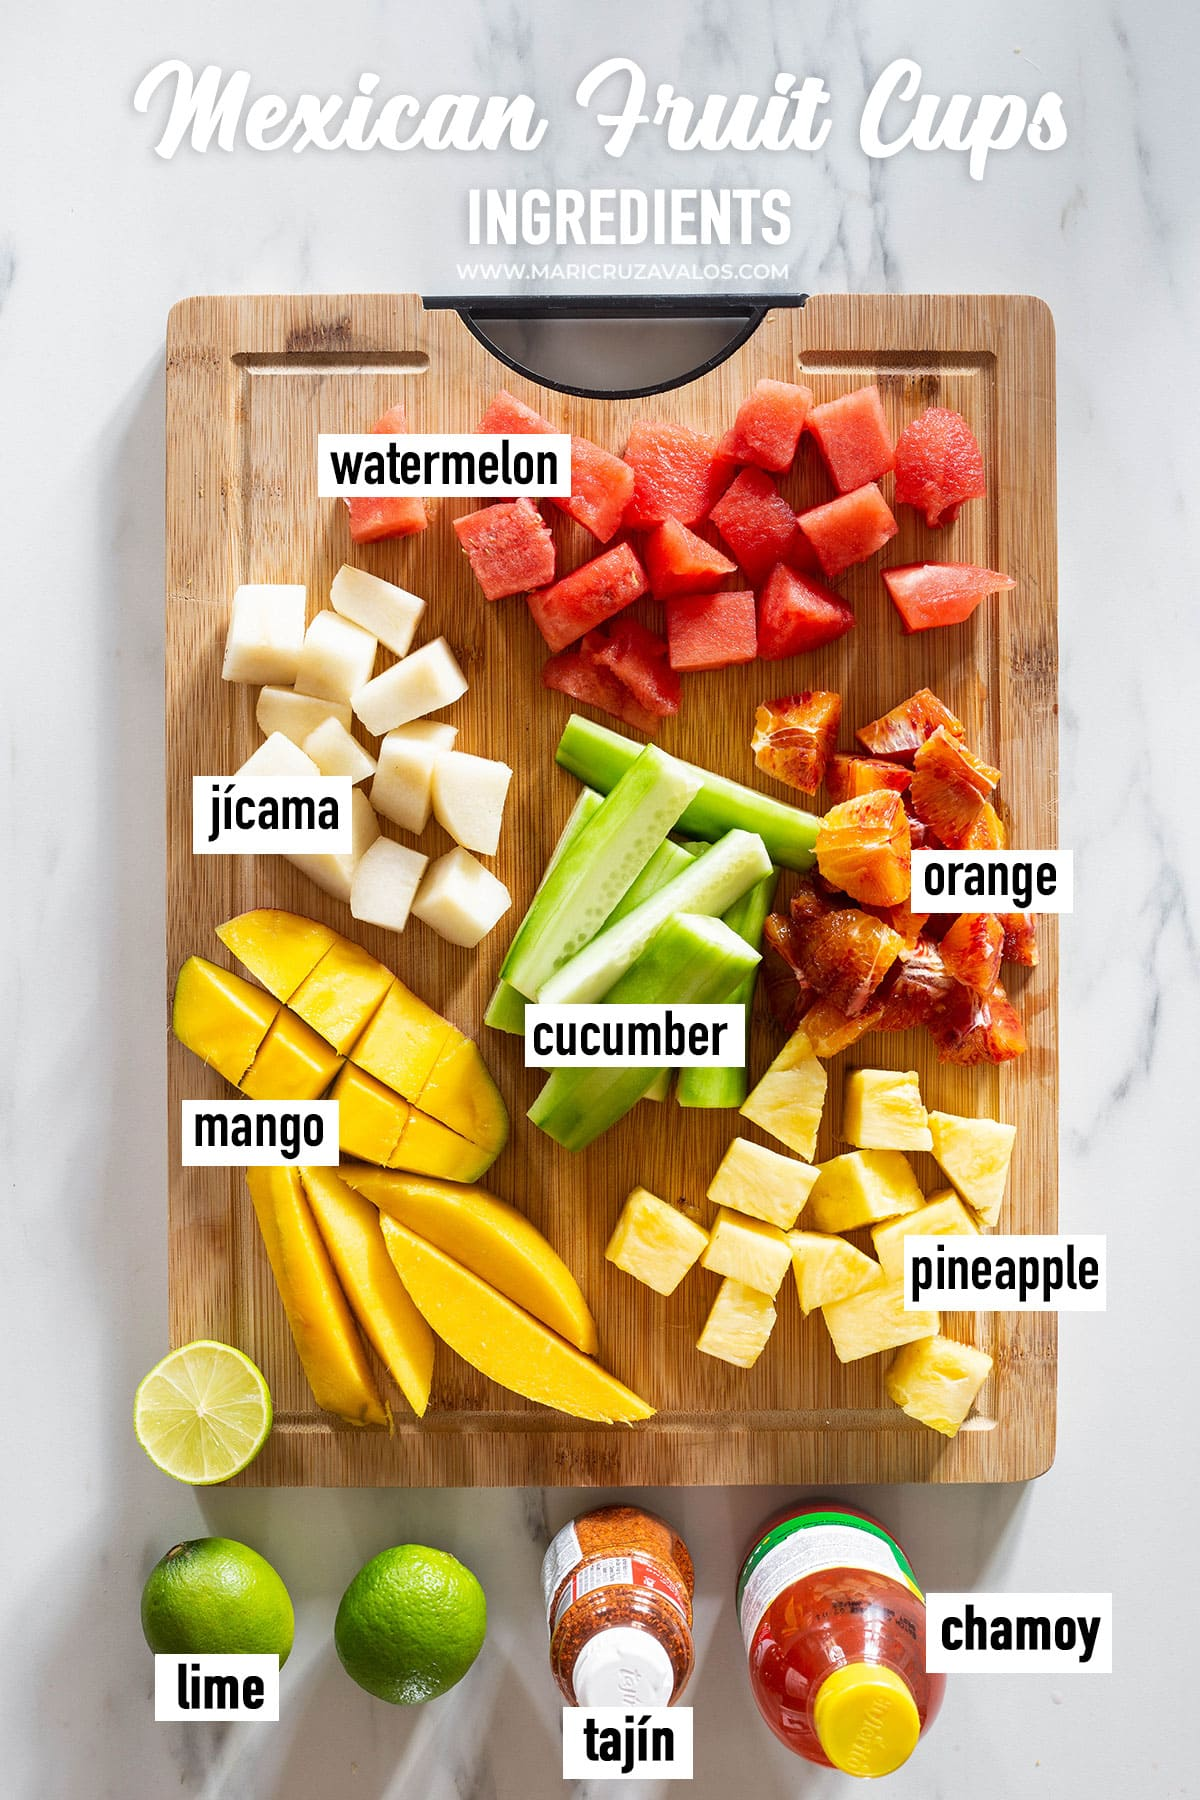 A cutting board loaded with various tropical fruits cut into pieces.